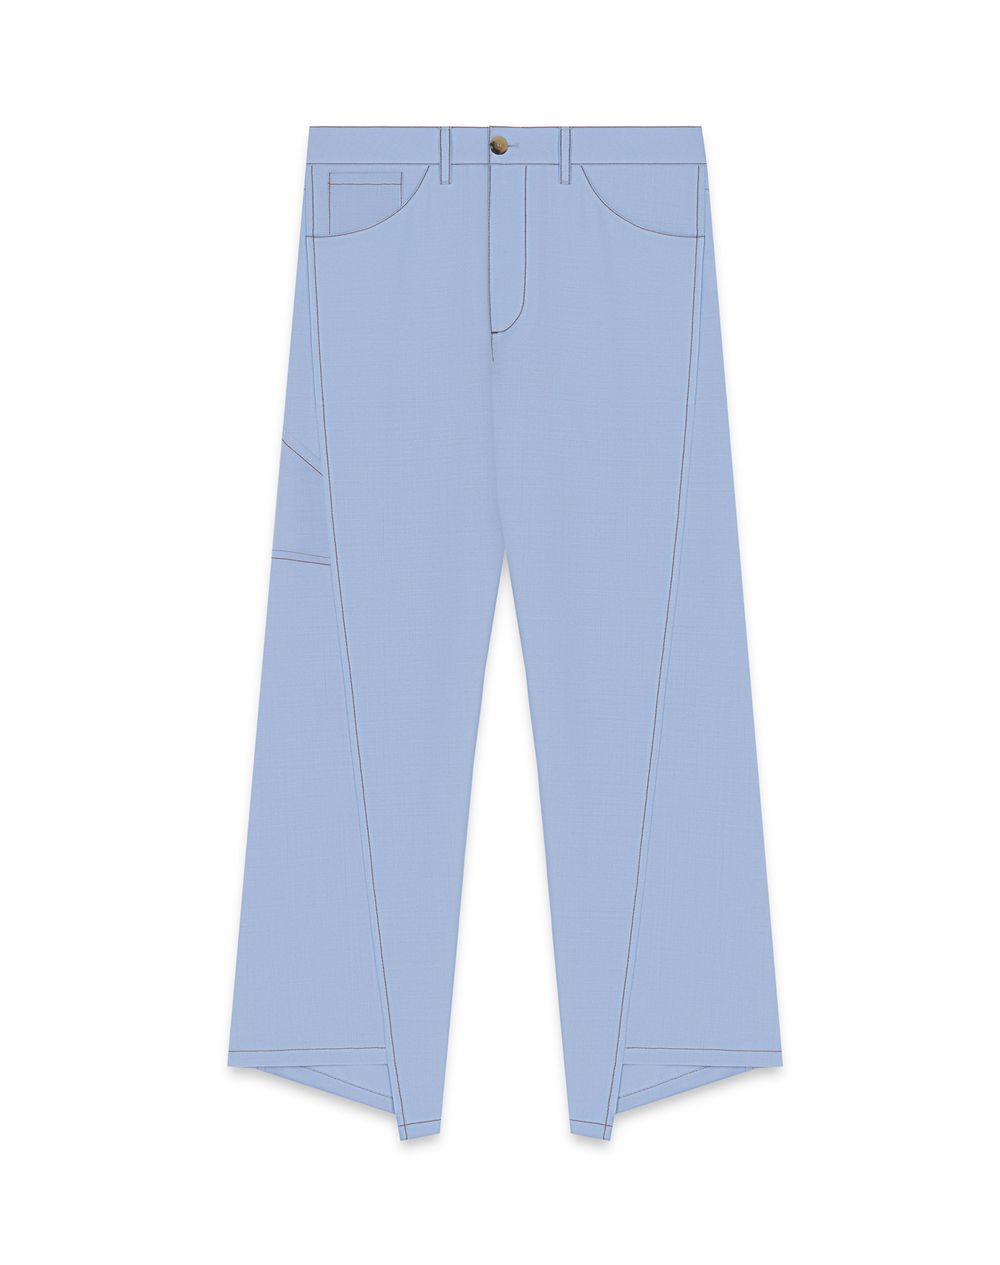 WOOL AND MOHAIR TROUSERS - Lanvin